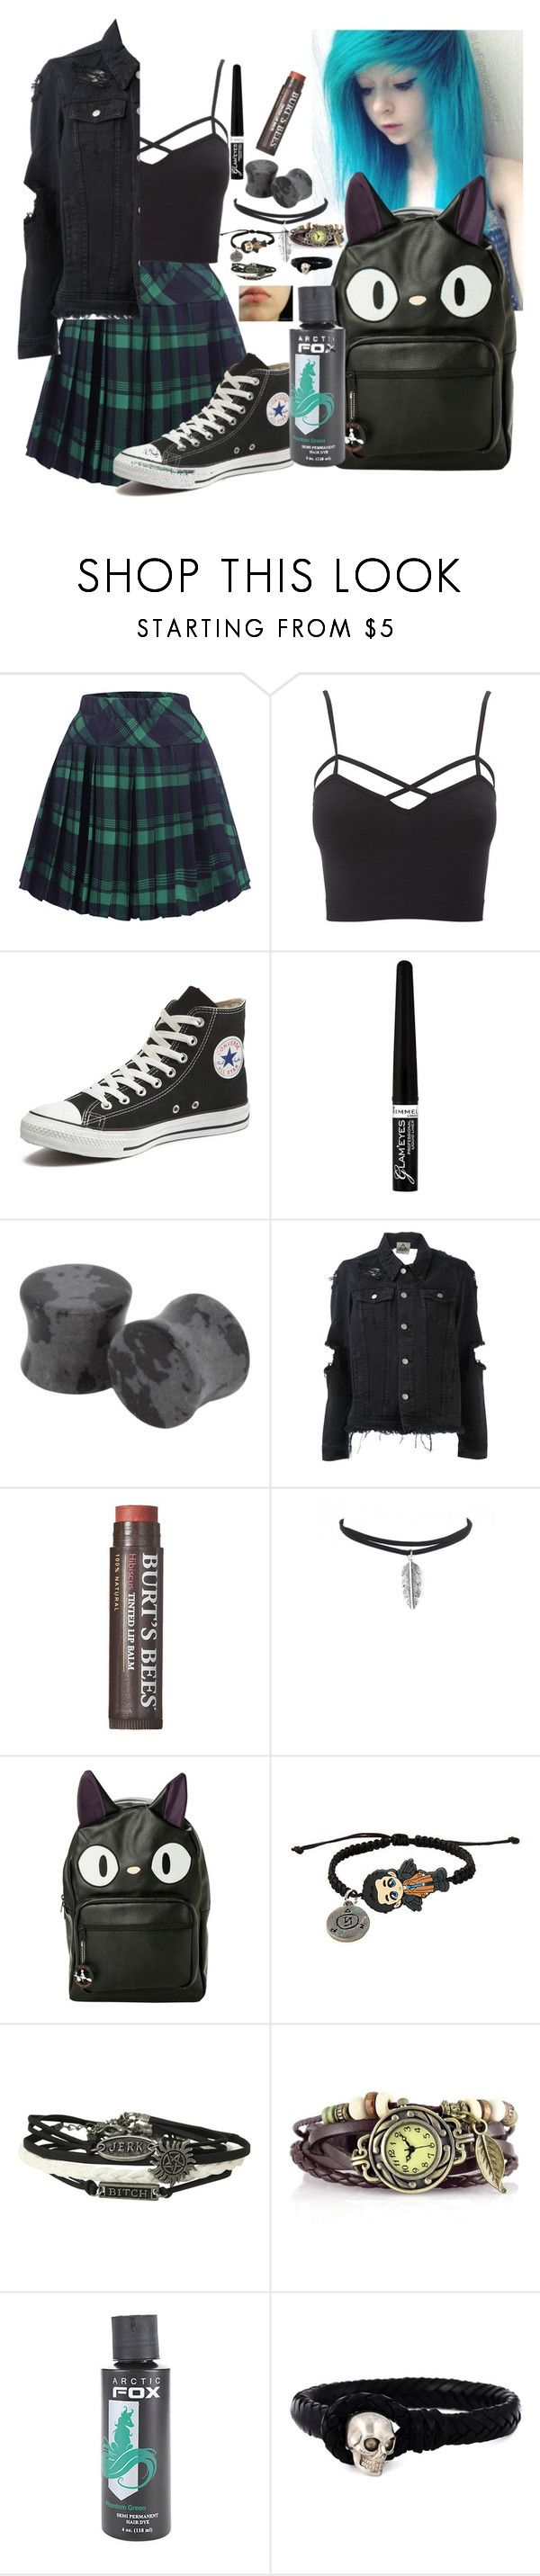 """Punk/Emo/dressy"" by hold-on-til-may ❤ liked on Polyvore featuring Charlotte Russe, Converse, Rimmel, UNIF, Burt's Bees, Ghibli, Hot Topic, Alexander McQueen and plus size clothing"